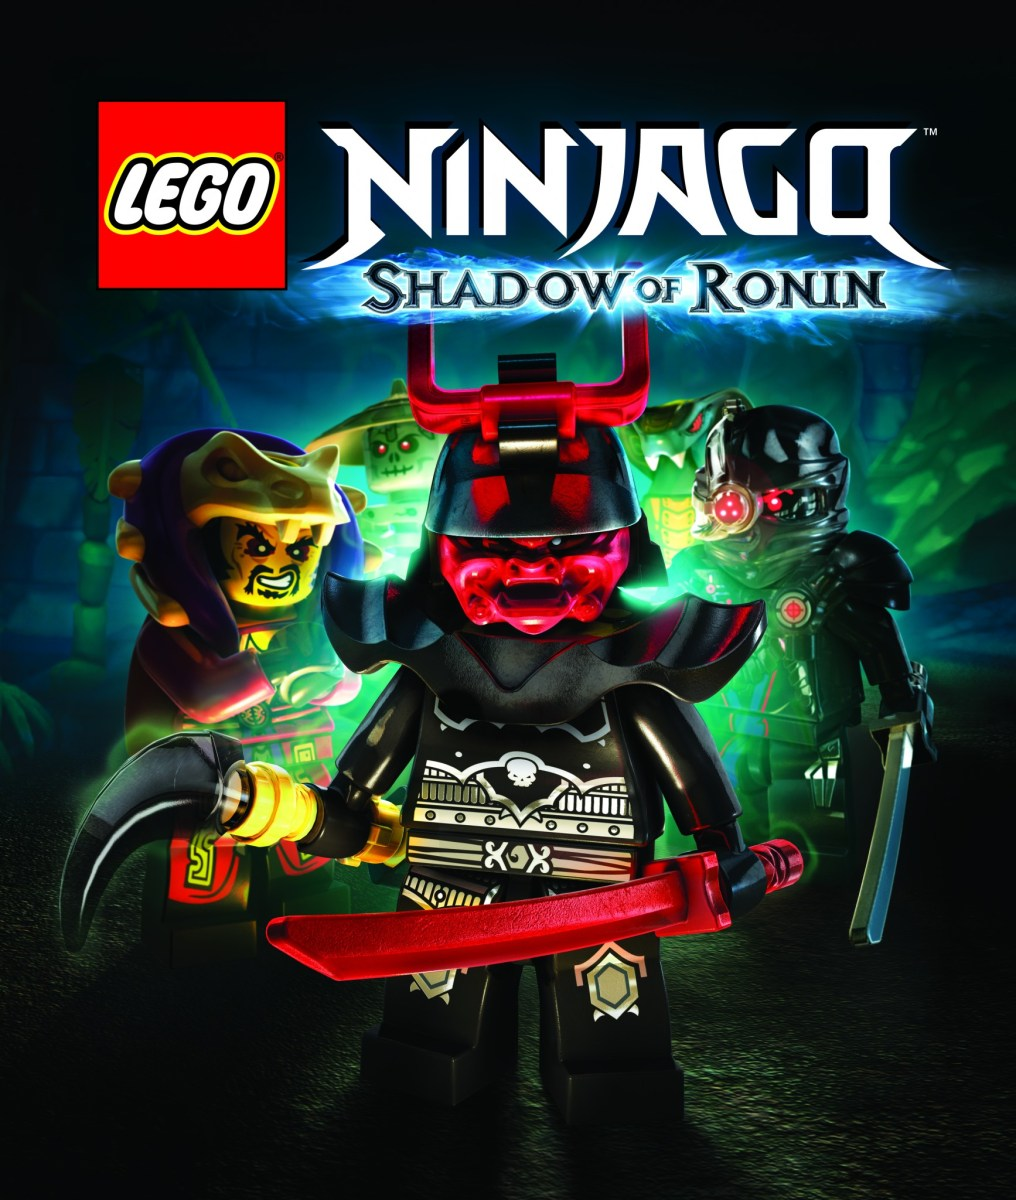 LEGO Ninjago: Shadow of Ronin Villains #LEGODad